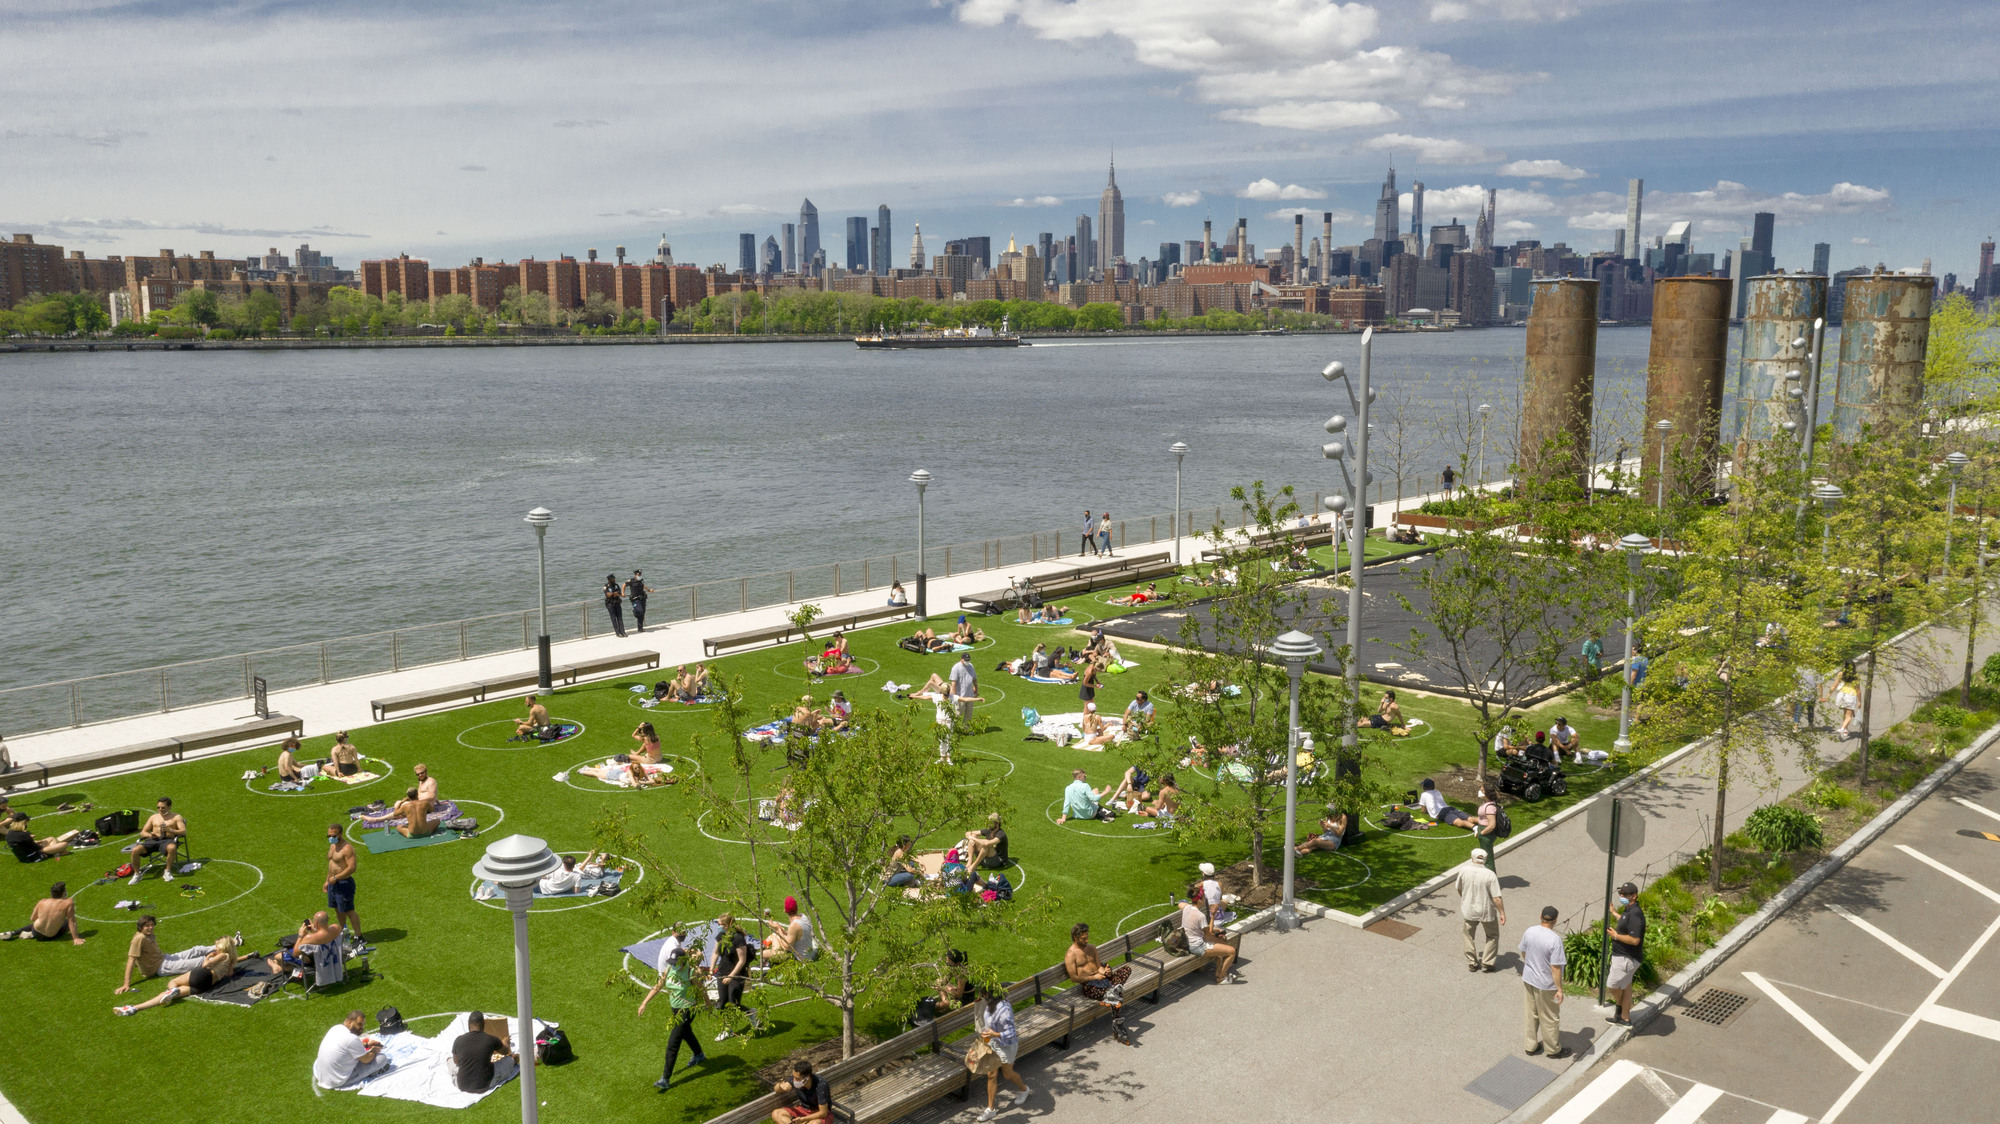 8-Foot Circles Provide Social Distancing Blueprint in Parks